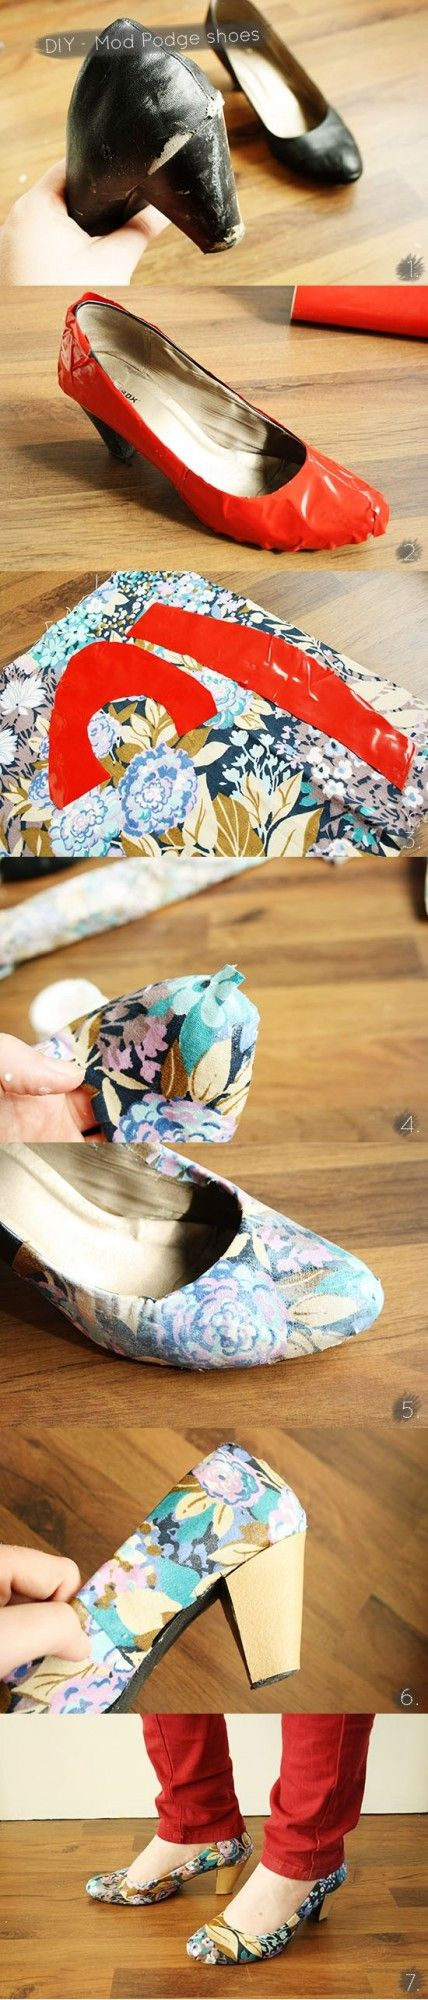 23 Useful DIY Ideas You Must Try - Mod Podge Old Shoes with Fabric